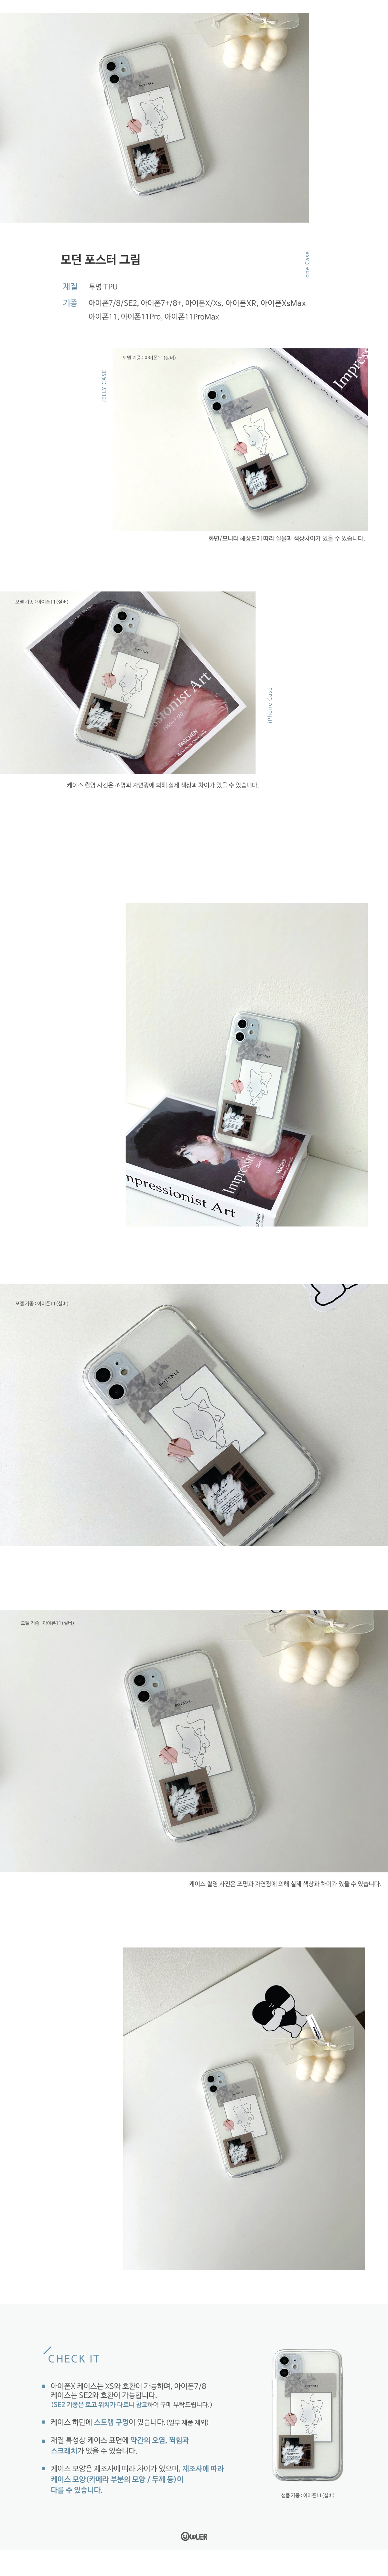 Modern poster picture iphone case